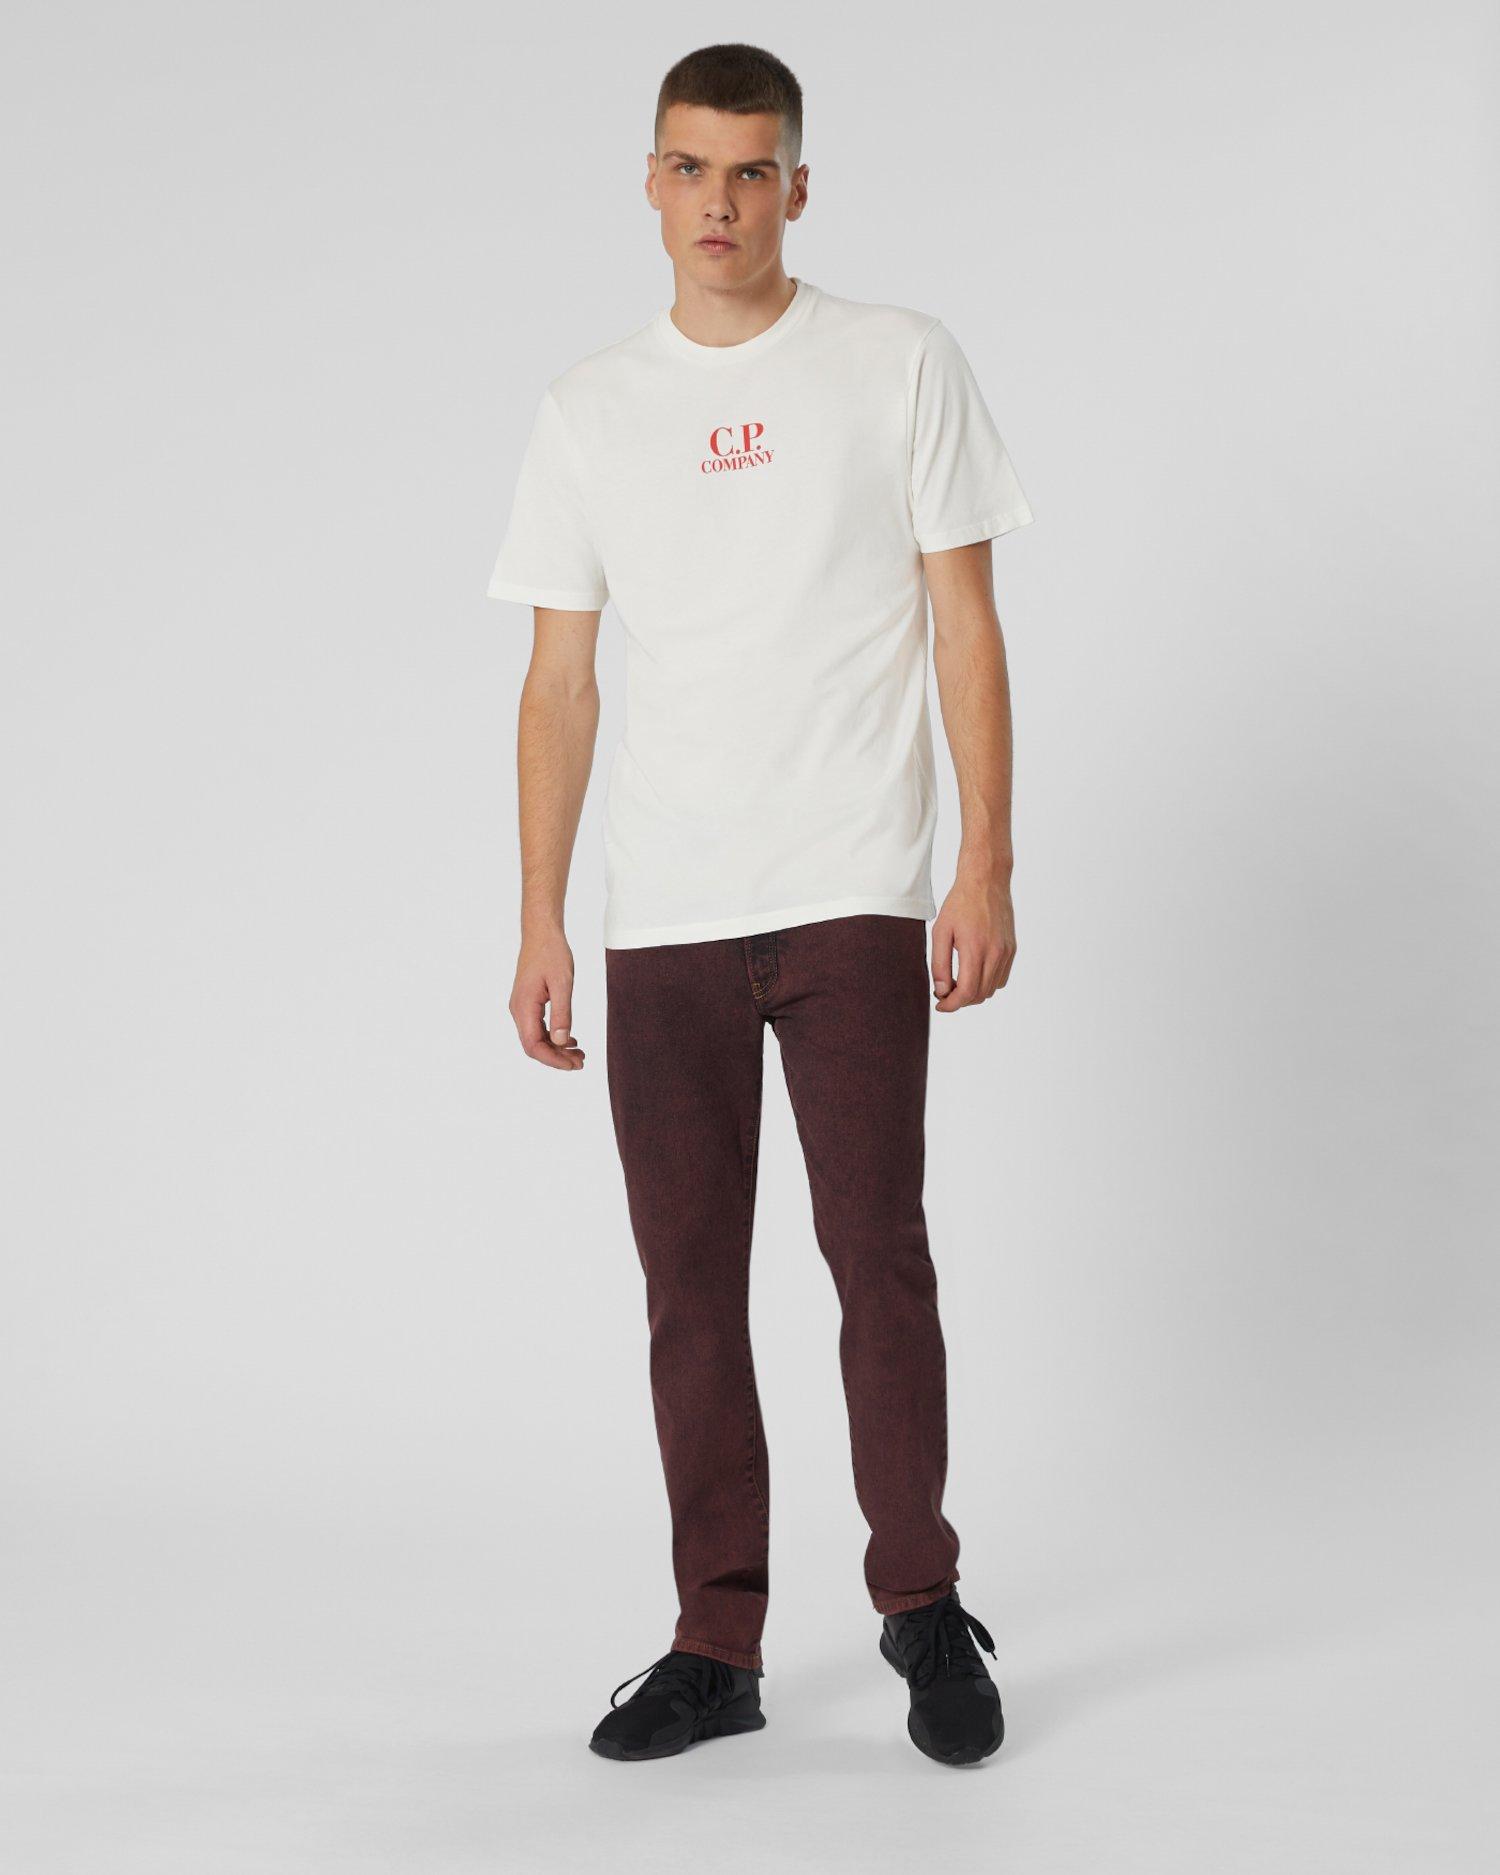 Jersey 20/1 S/S Tee in White